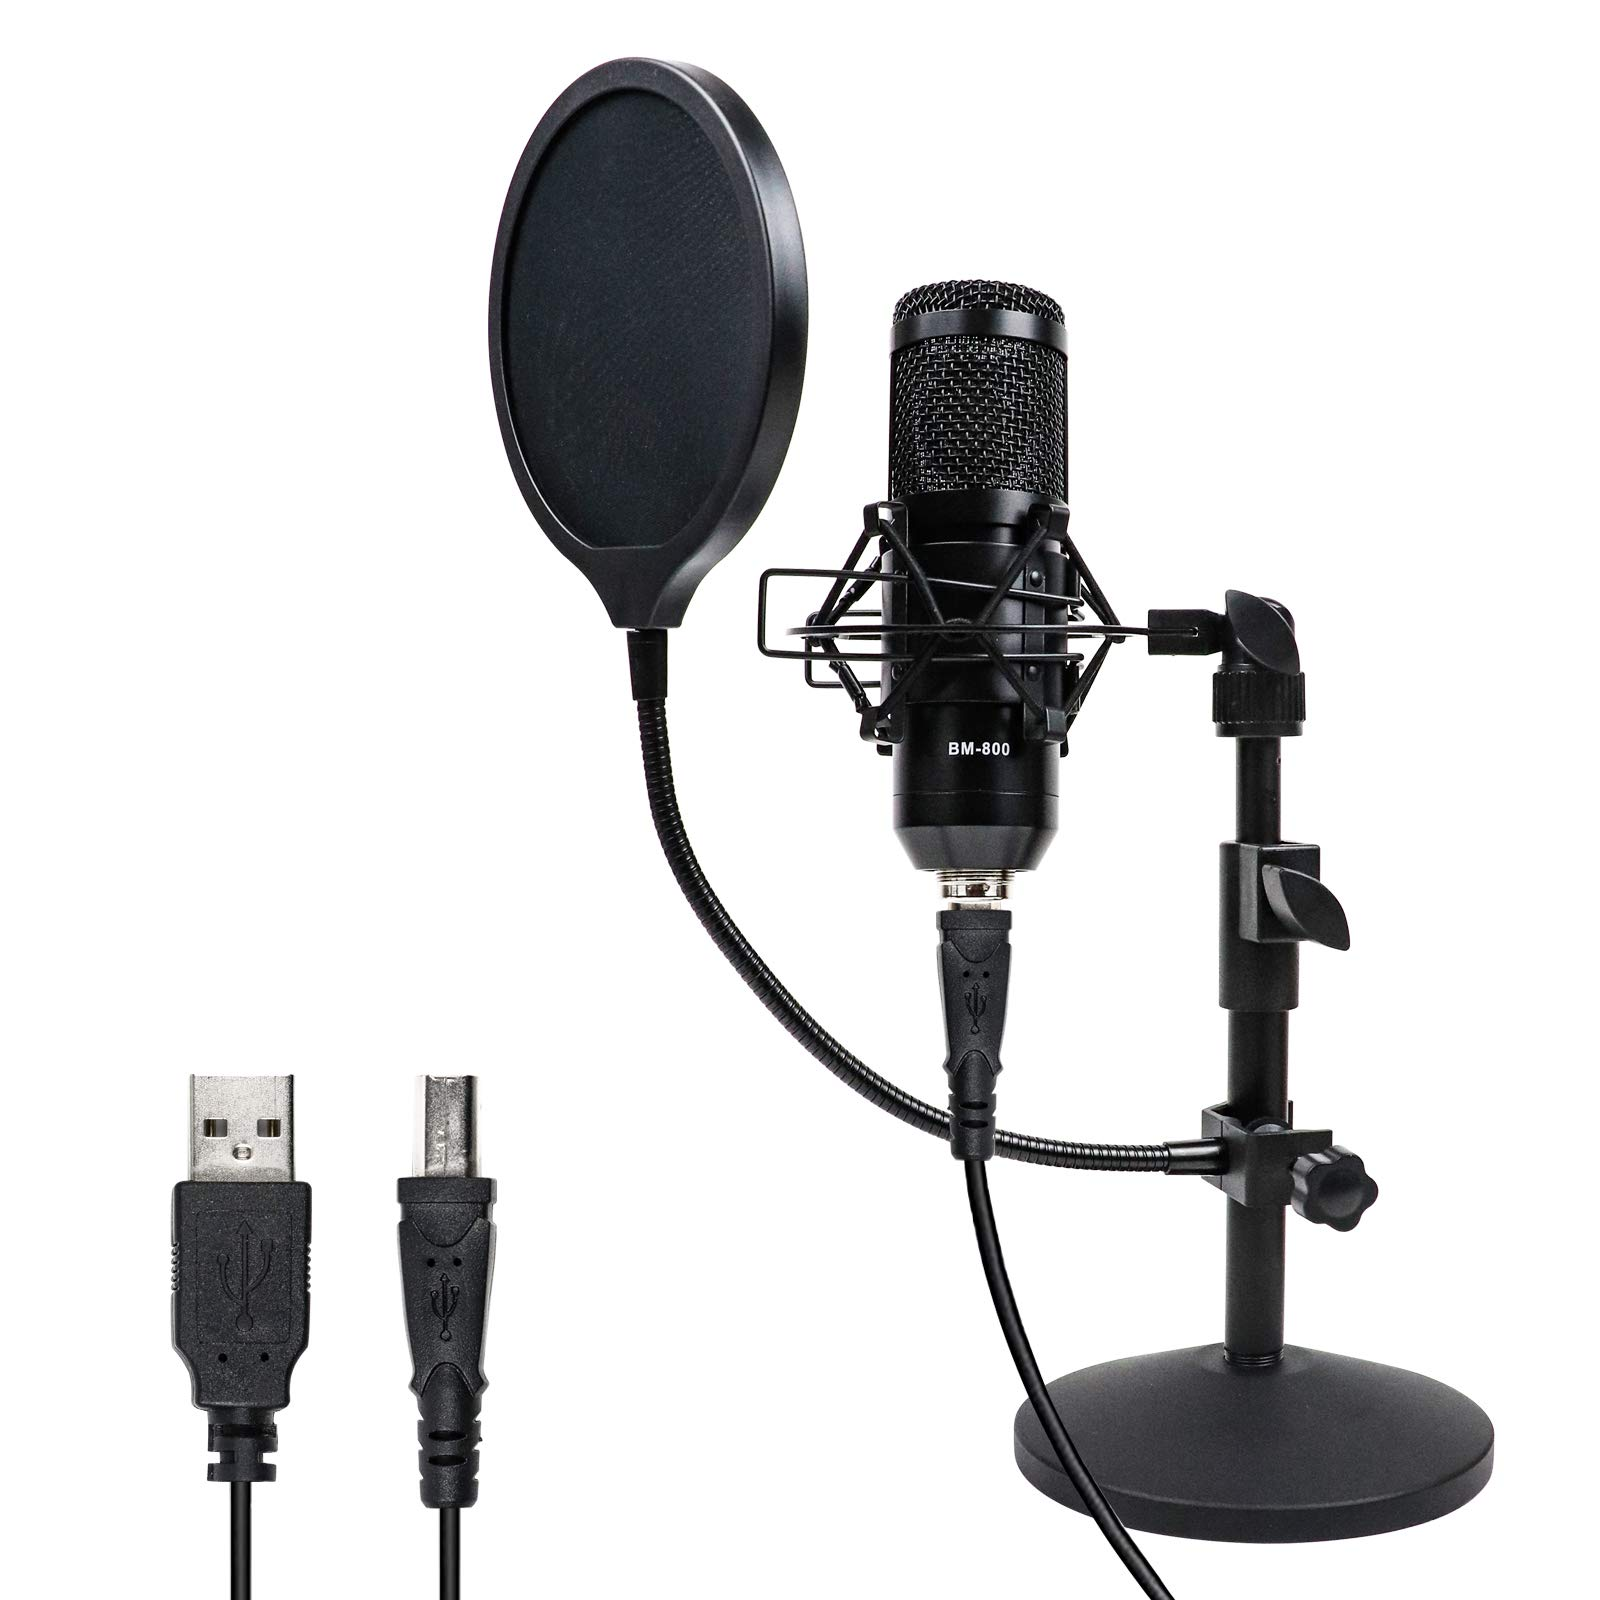 MSIZOY USB Condenser Microphone Kit,Cardioid Computer Mic 192KHZ/24Bit with Shock Mount Pop Filter for Recording, Streaming, Gaming, Broadcasting,etc.